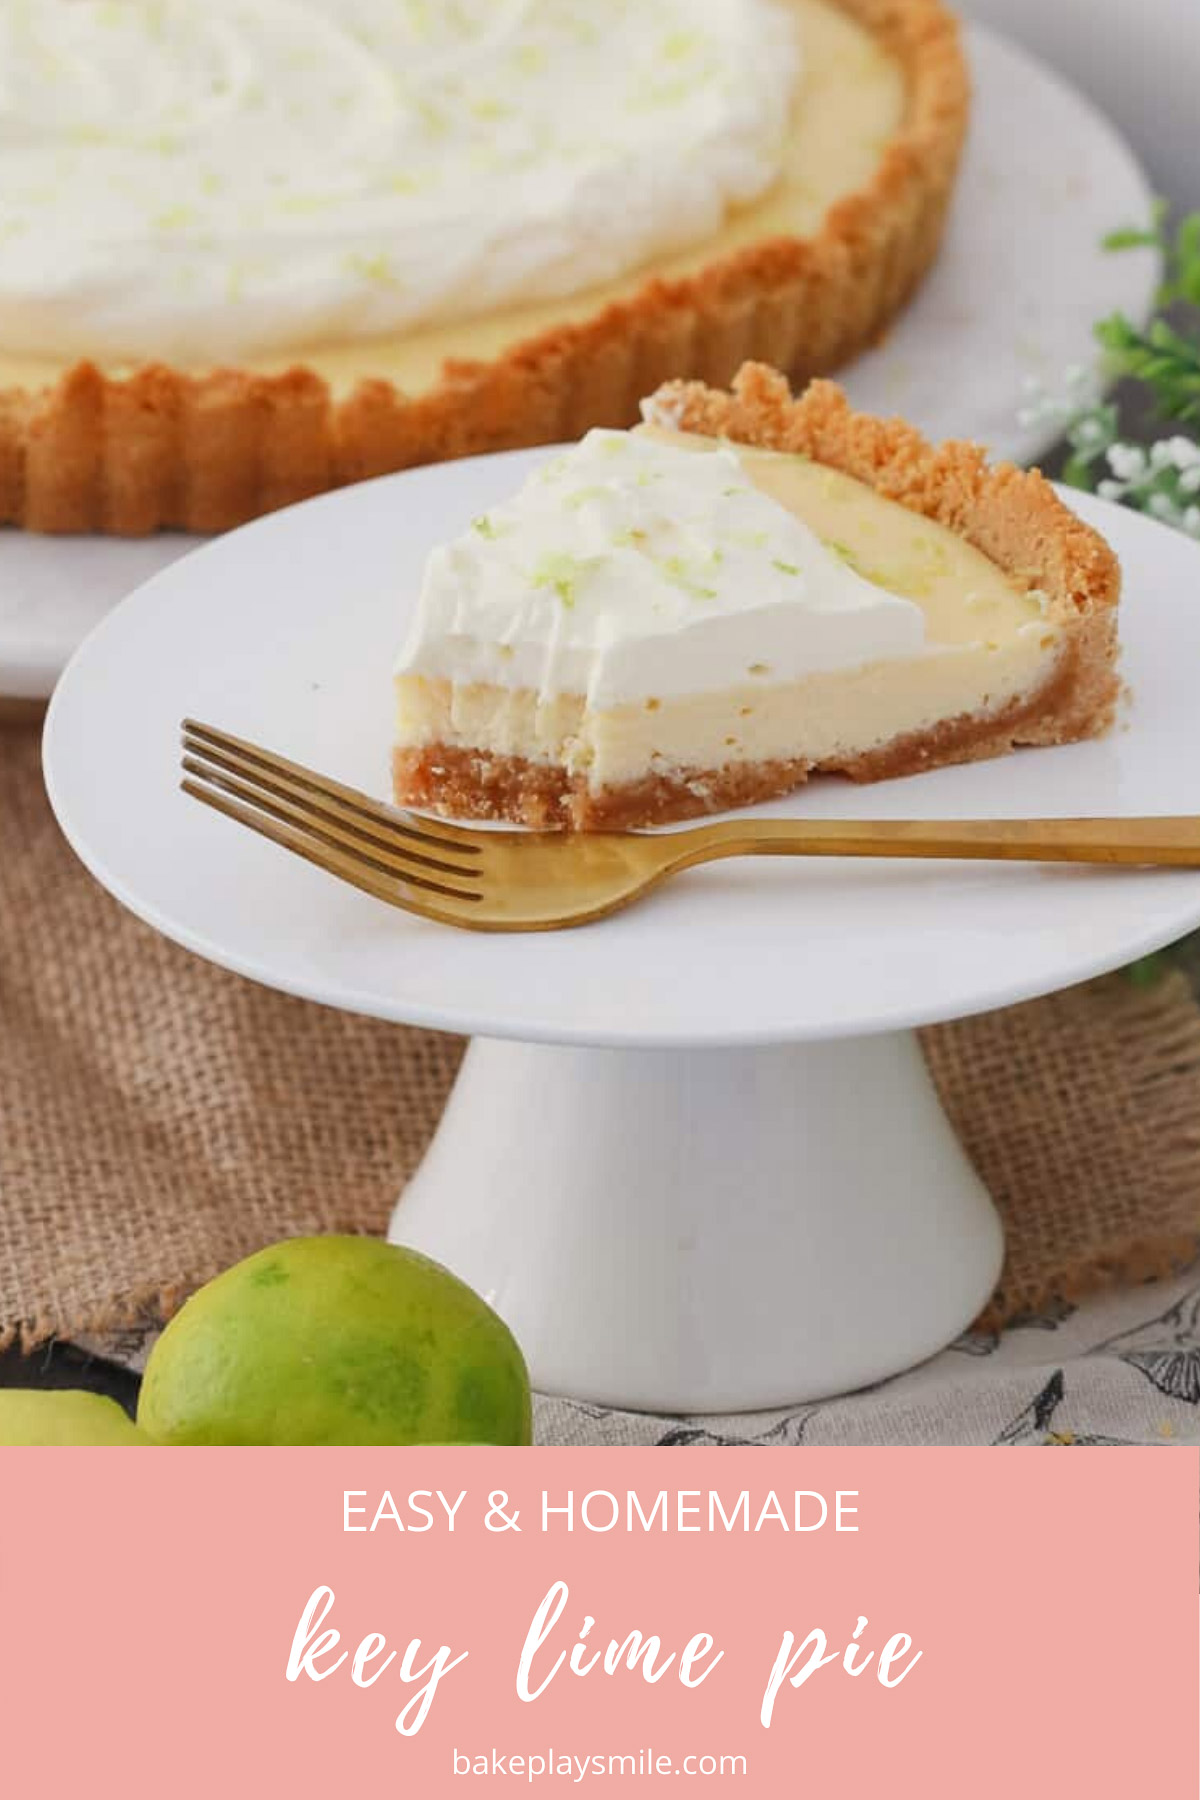 A half-eaten piece of lime tart on a white cake stand with a gold fork.